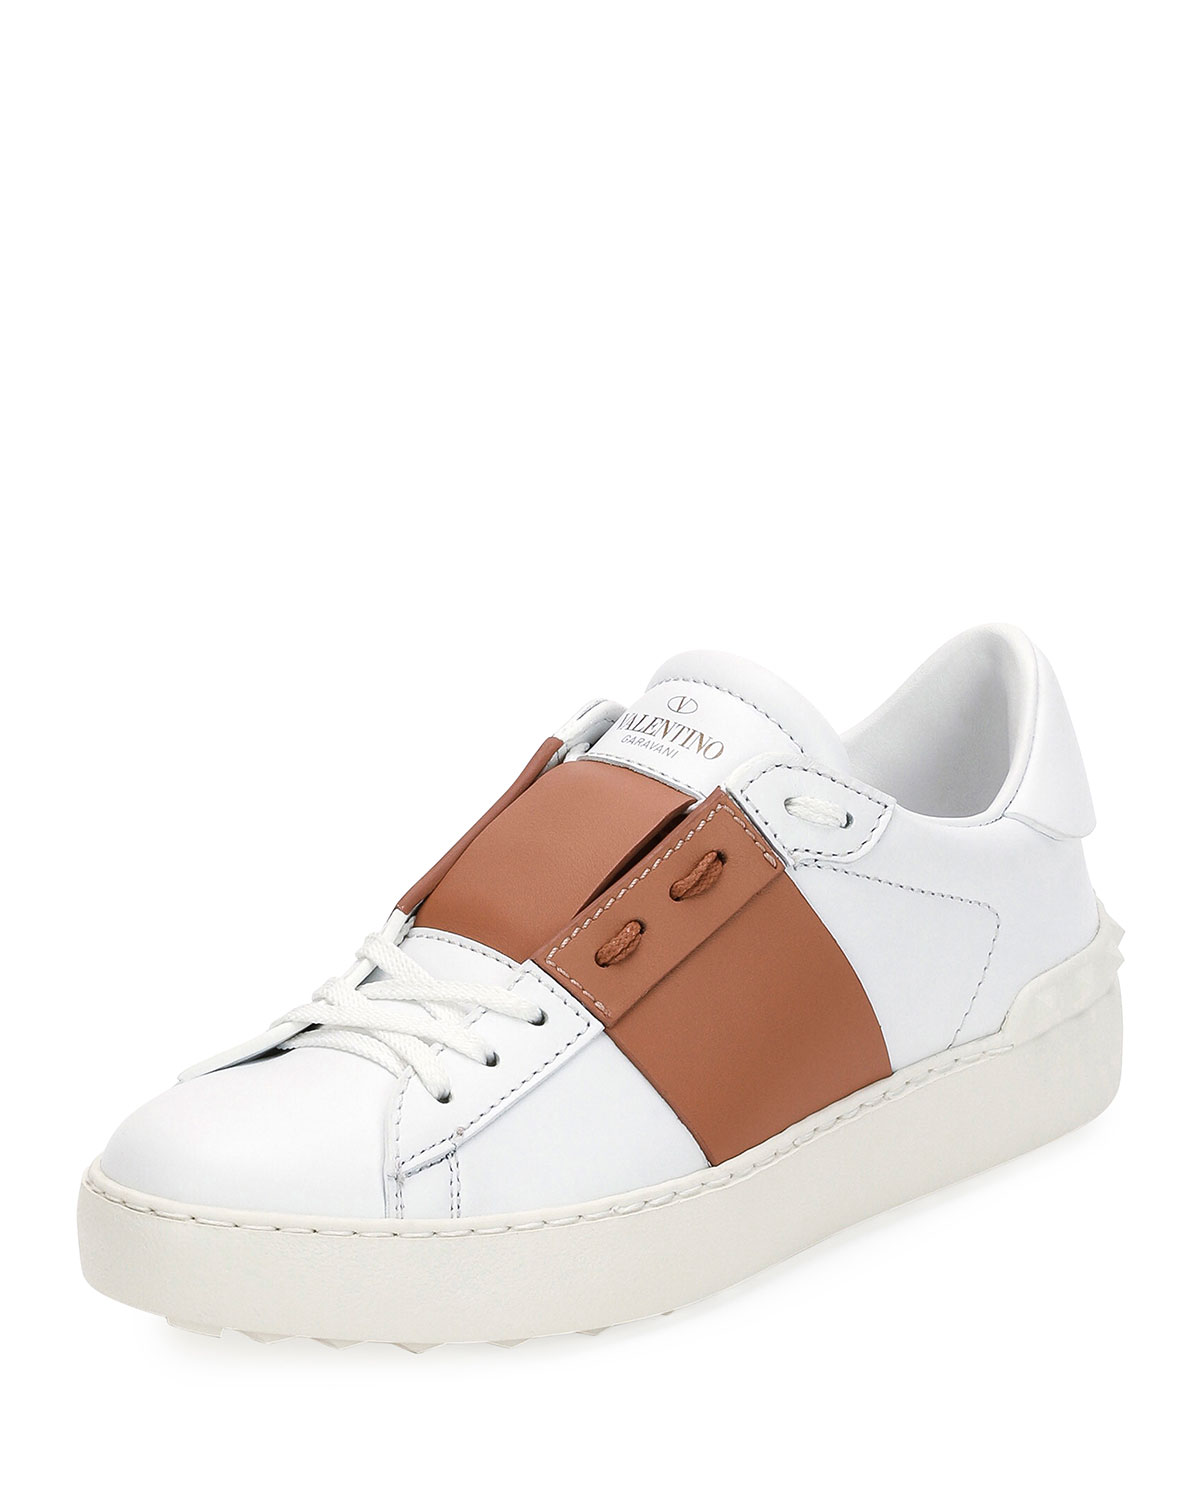 Colorblock Leather Low-Top Sneaker, Flesh